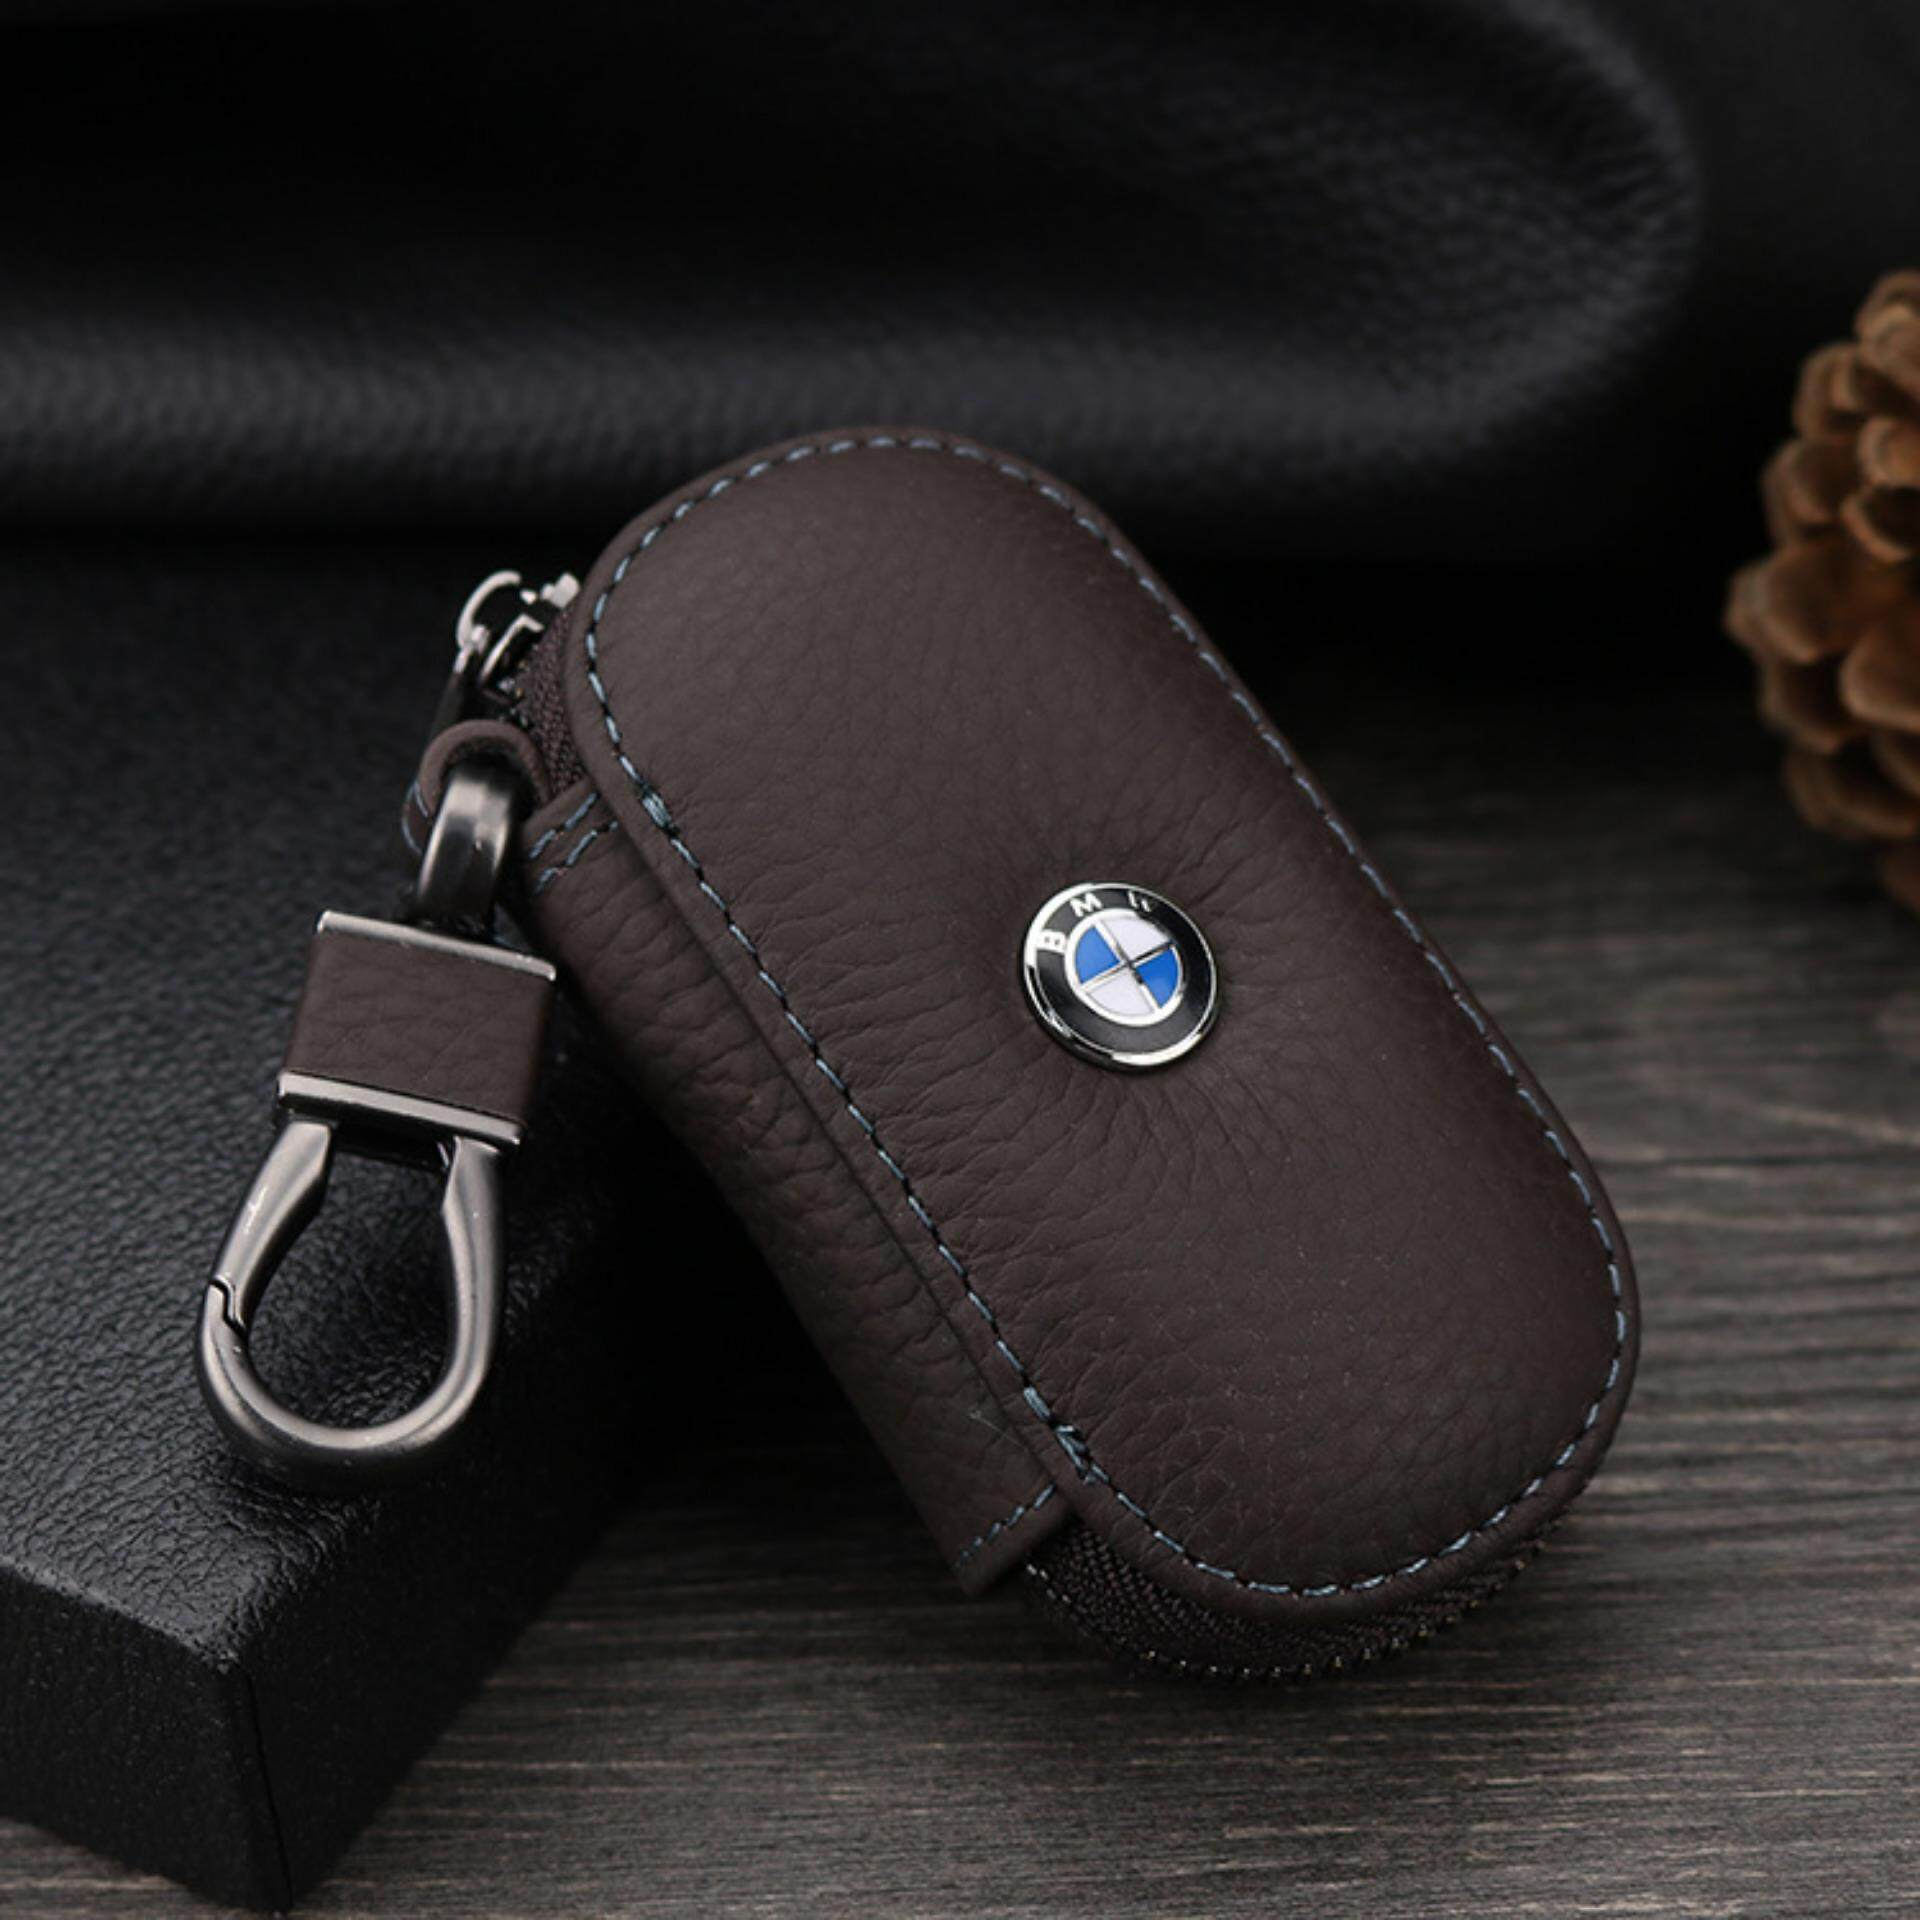 Jual 1Pc Leather Key Wallet Car Key Case For For Bmw E90 F10 F30 E34 F20 X5 E53 E30 X6 X1 X3 E46 E39 Coffee Intl